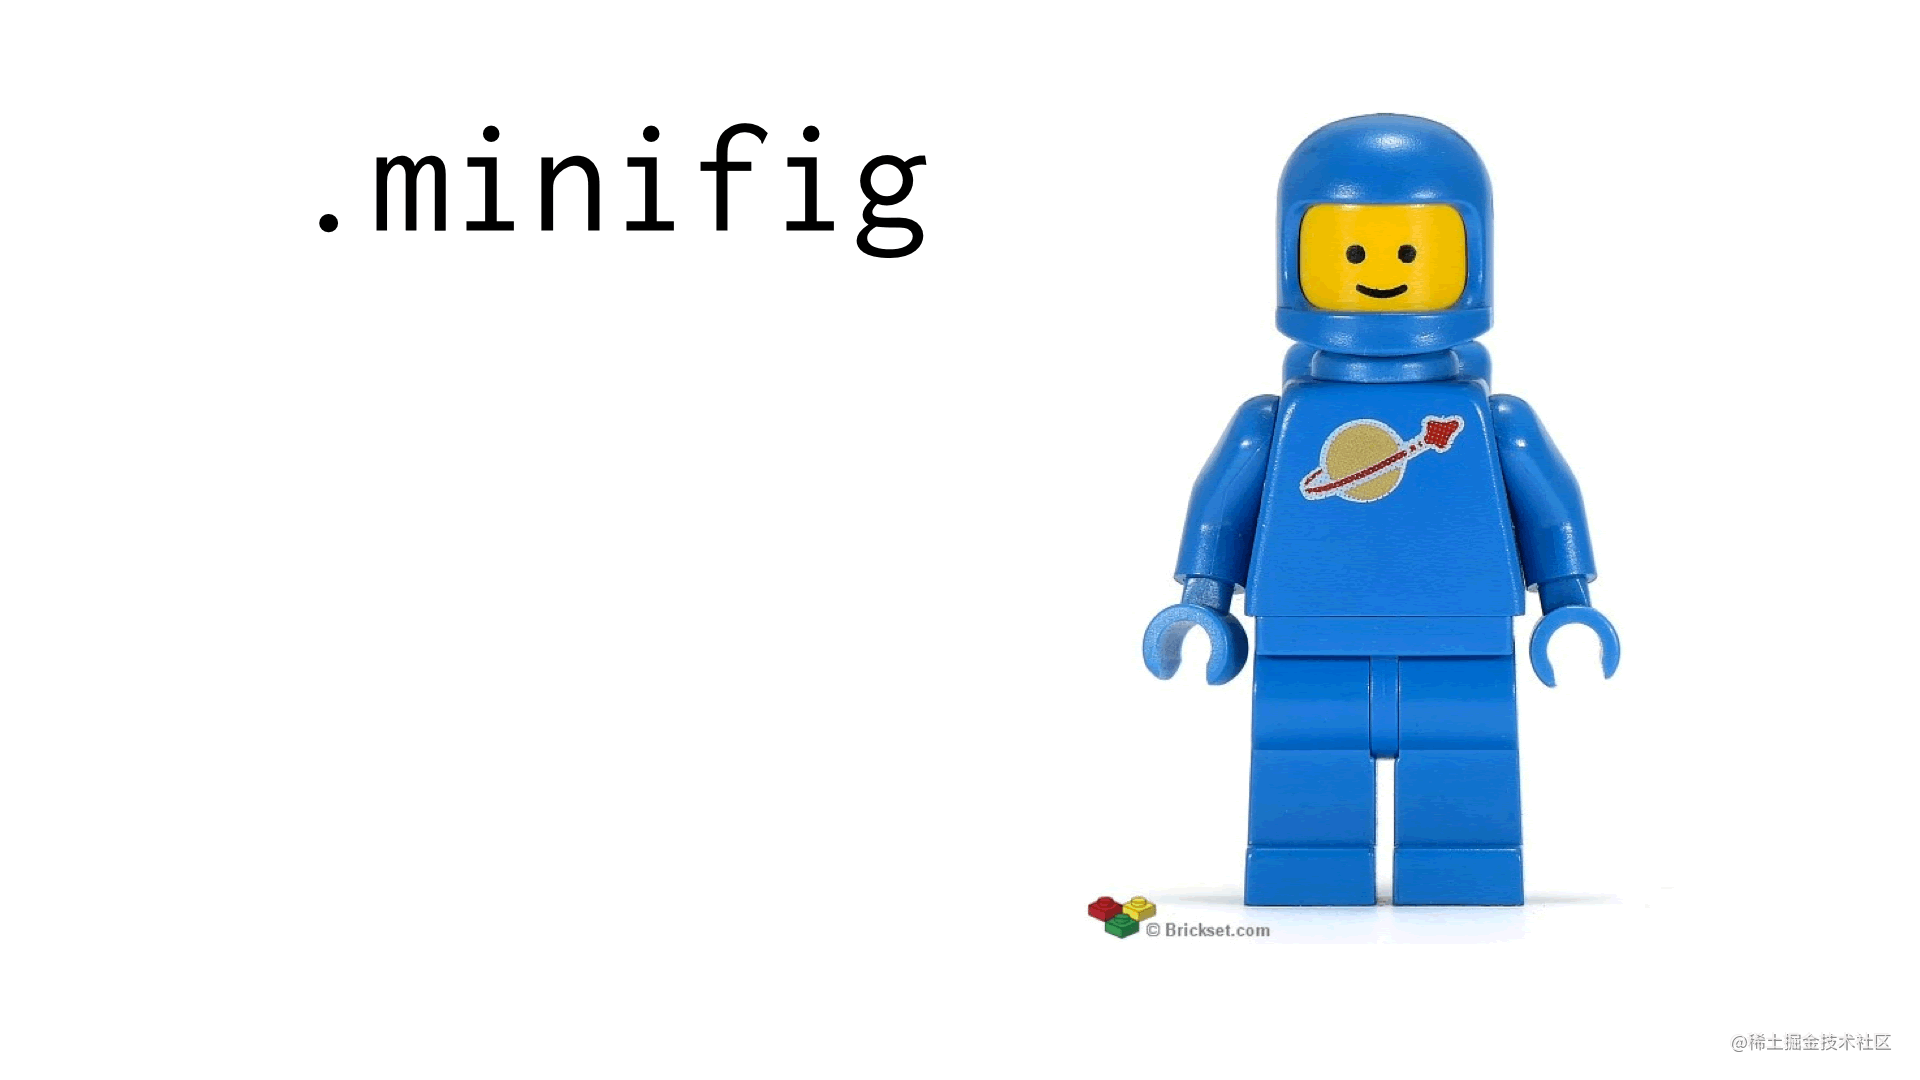 Example of .minifig to indicate a lego minifig